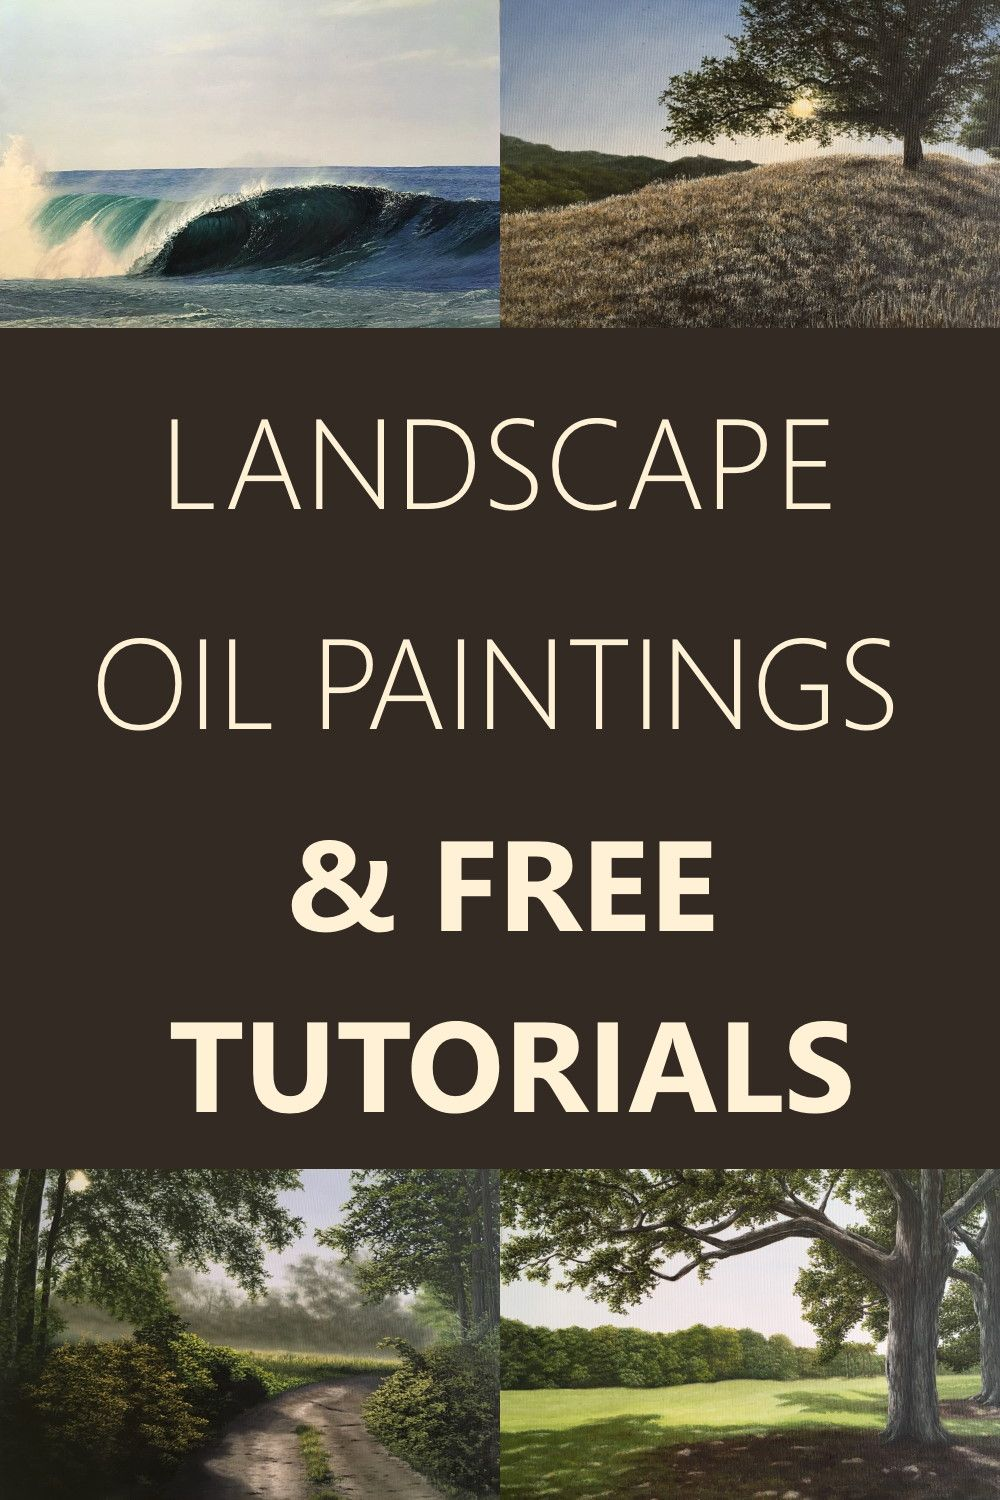 Beautiful fine art gallery for oil painting with many tutorials, step-by-step guides, tips and featured artists. Learn to draw and paint online for free. #oilpainting #landscapepainting #paintingtutorials #fineart #beautifulpaintings